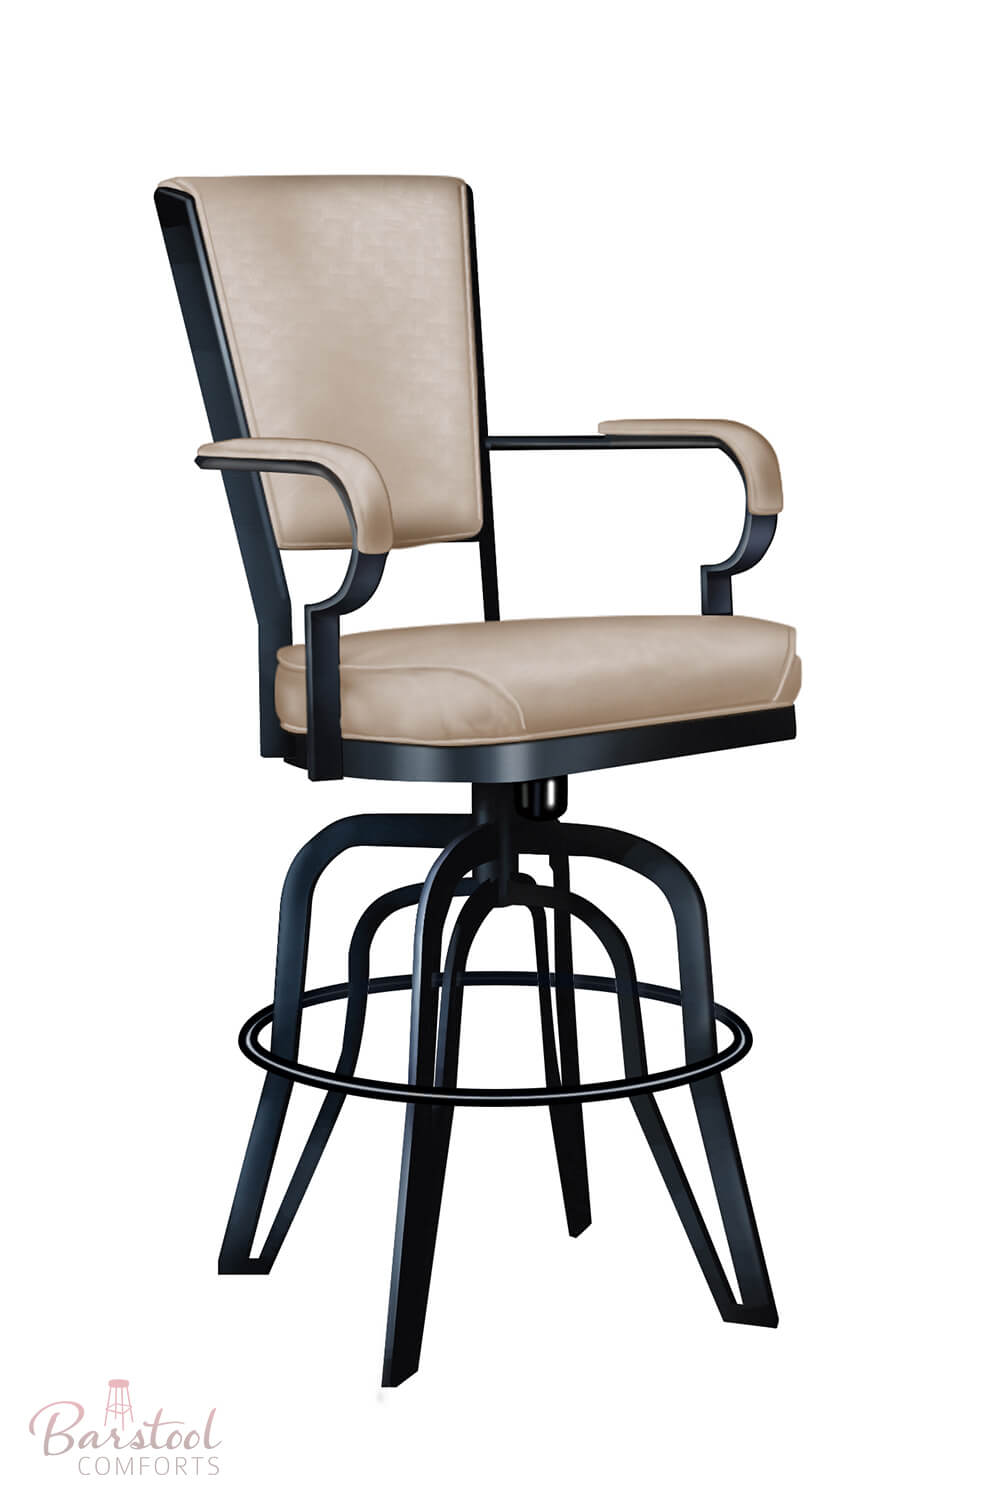 Lisa Furniture S 2545 Tilt Swivel Stool With Arms In Black Finish And Brown Fabric